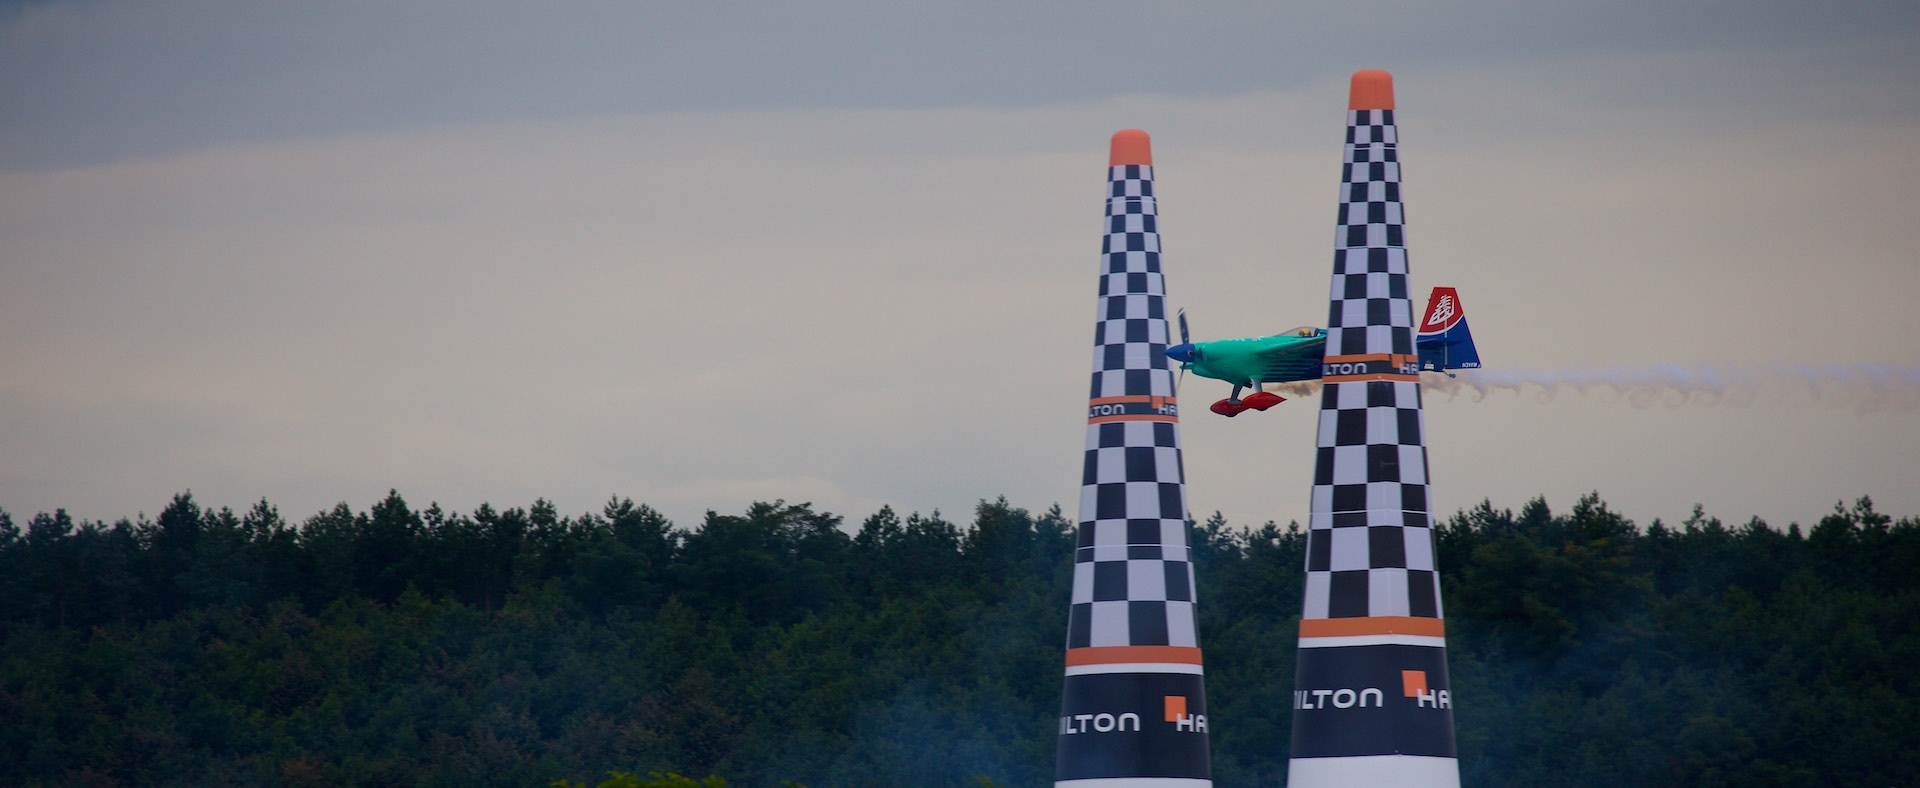 Red Bull Air Race, Lausitzring